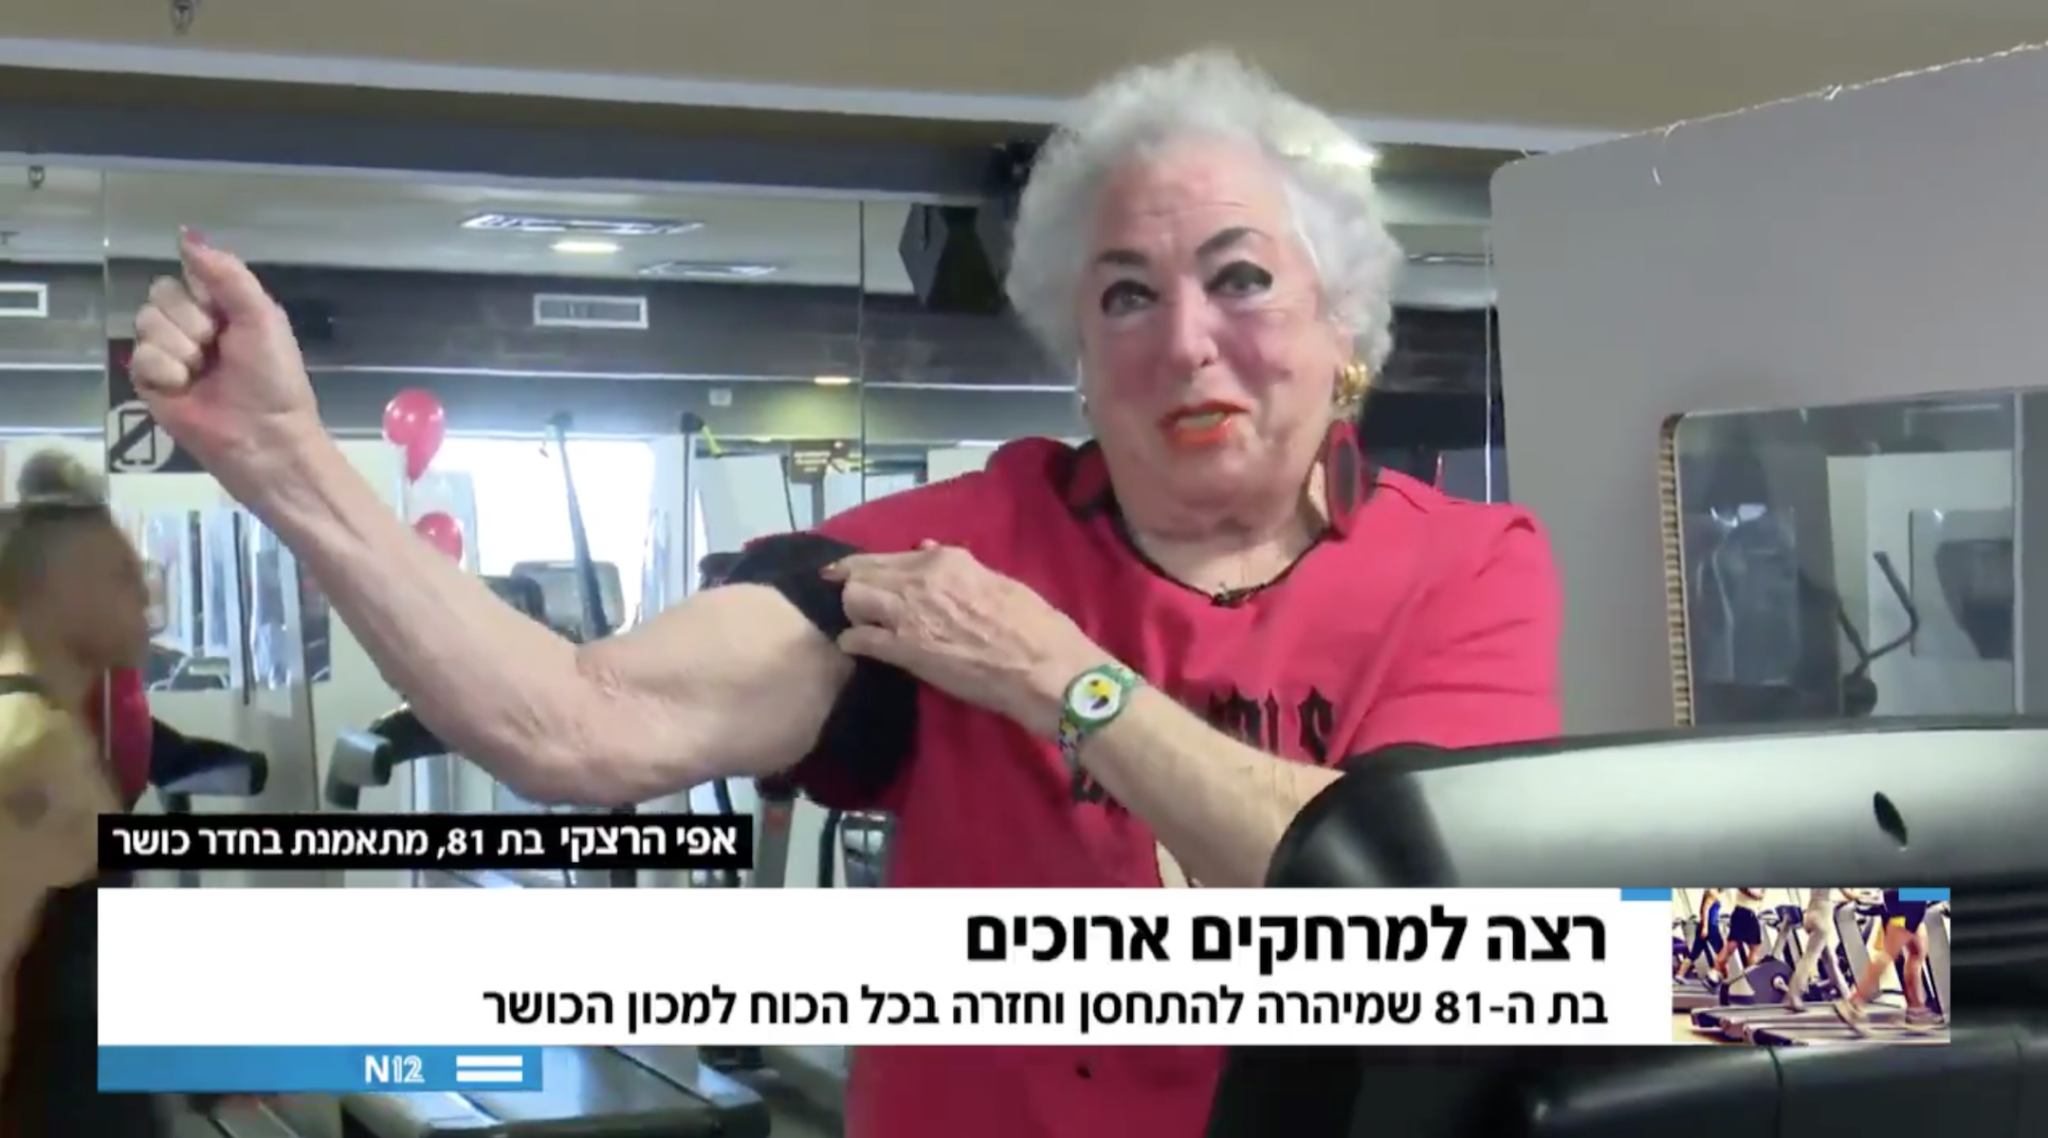 Effi Hertzke, 81, in an Israeli TV news segment that went viral. (Screenshot)